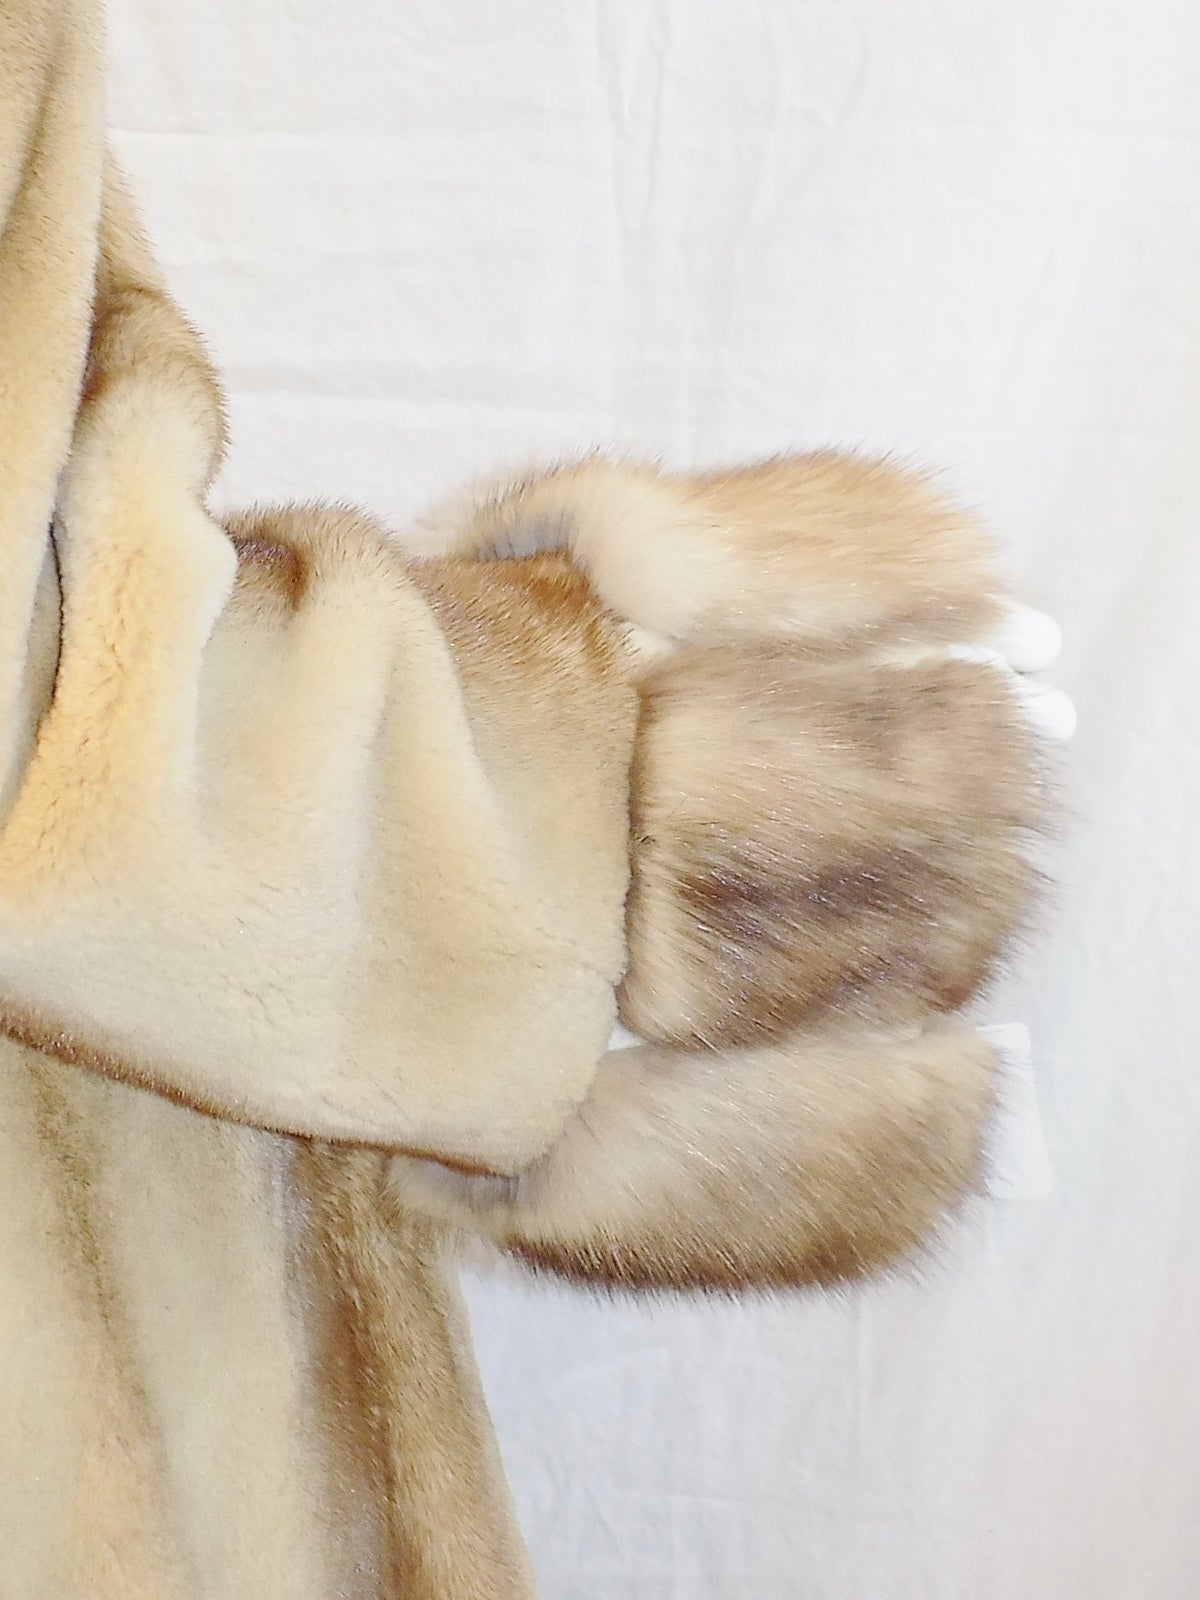 Beige Golden Russian  Sable  Spectacular Saga Furs Royal duster coat For Sale